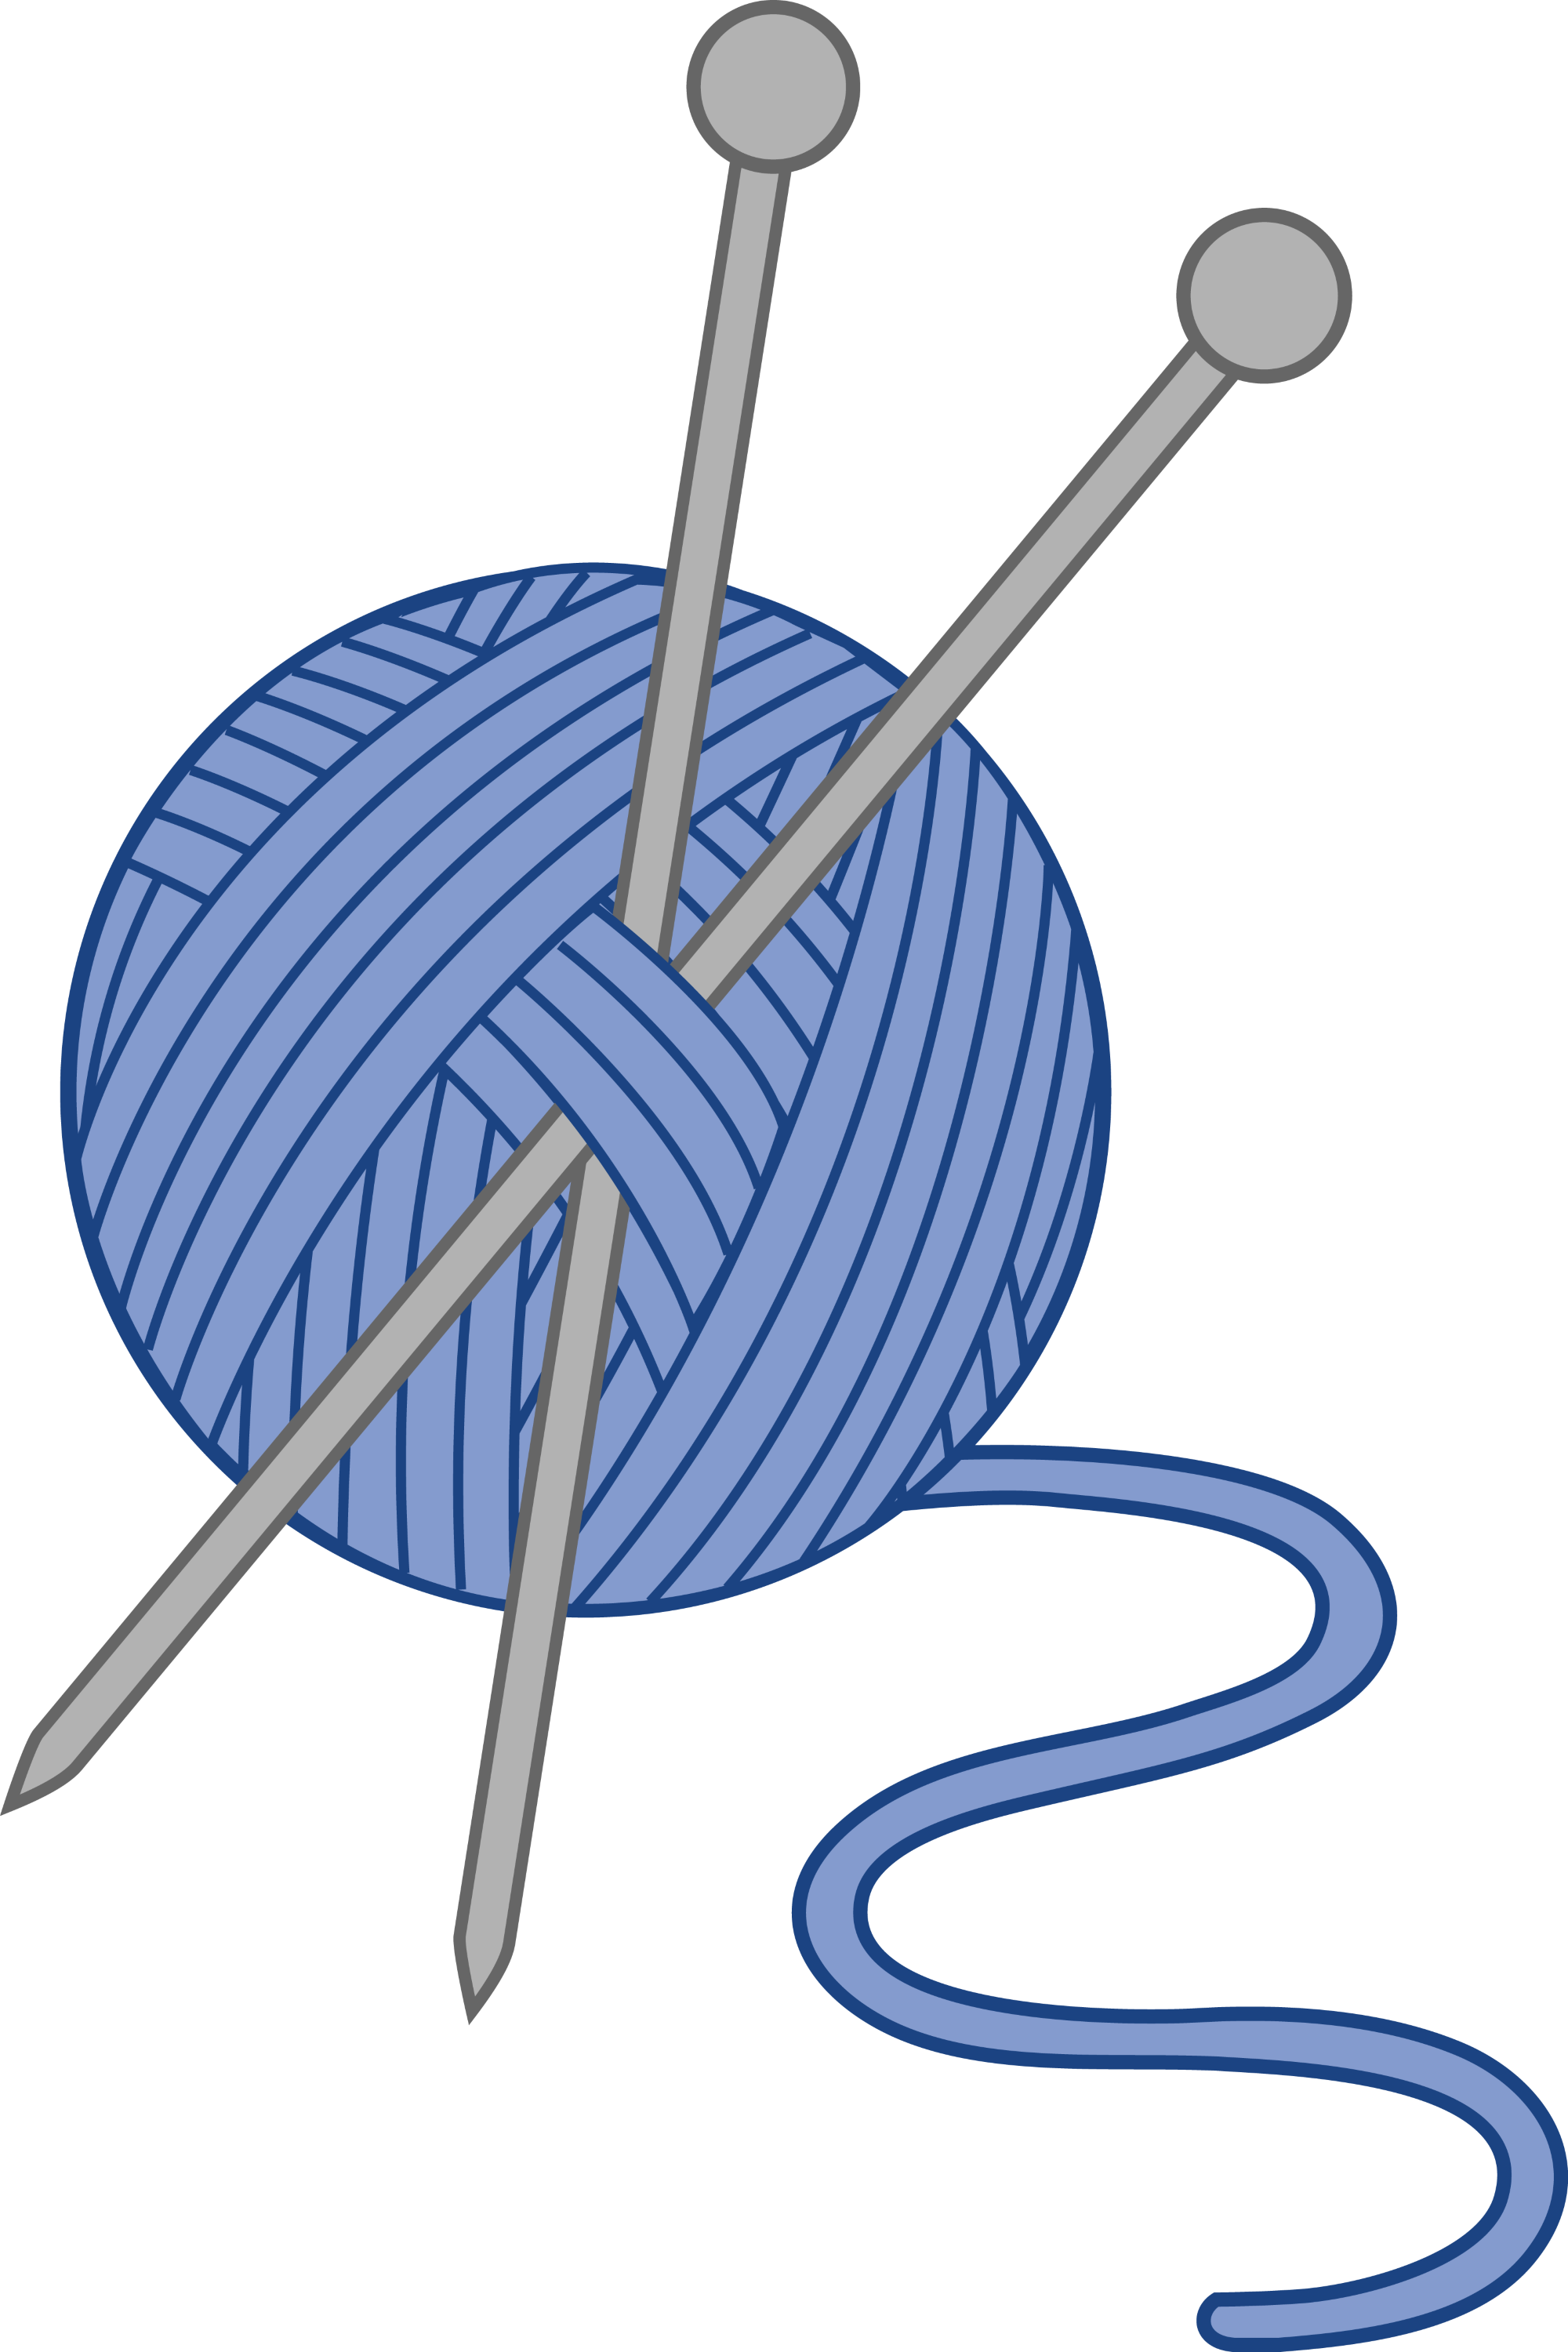 Blue Yarn and Knitting Needles - Free Clip Art